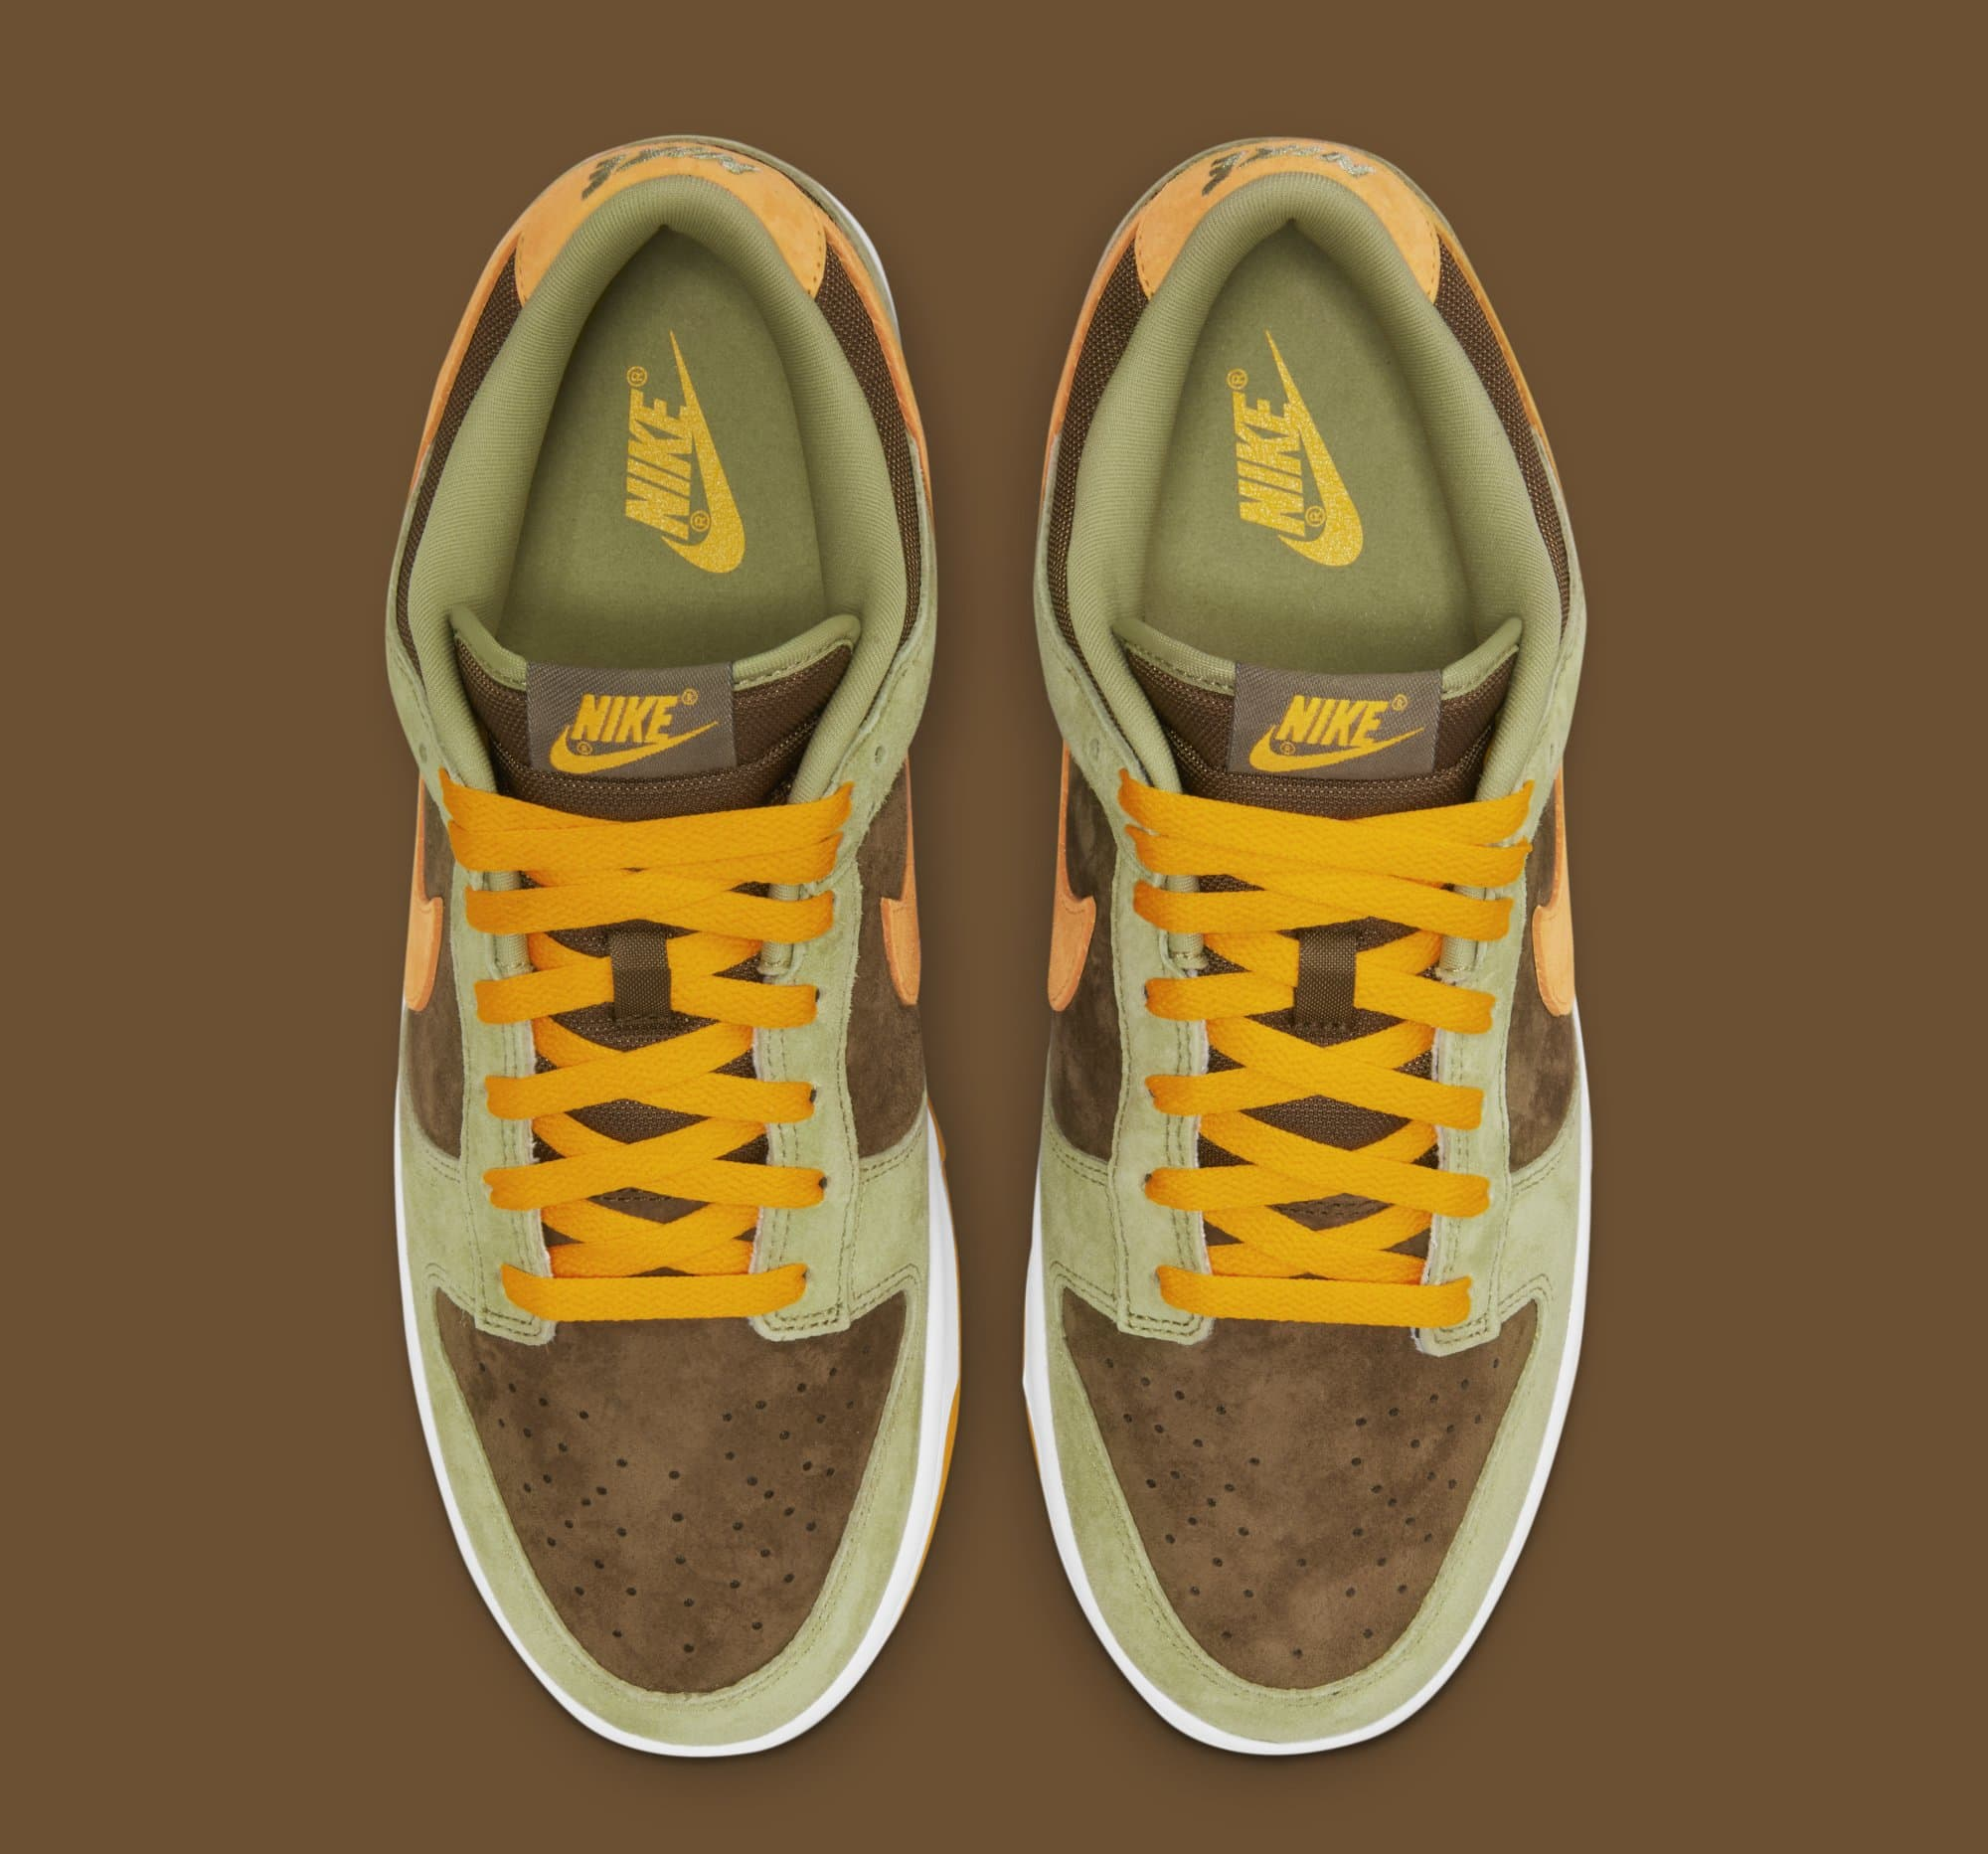 Nike Dunk Low 'Dusty Olive' DH5360-300 (Top)